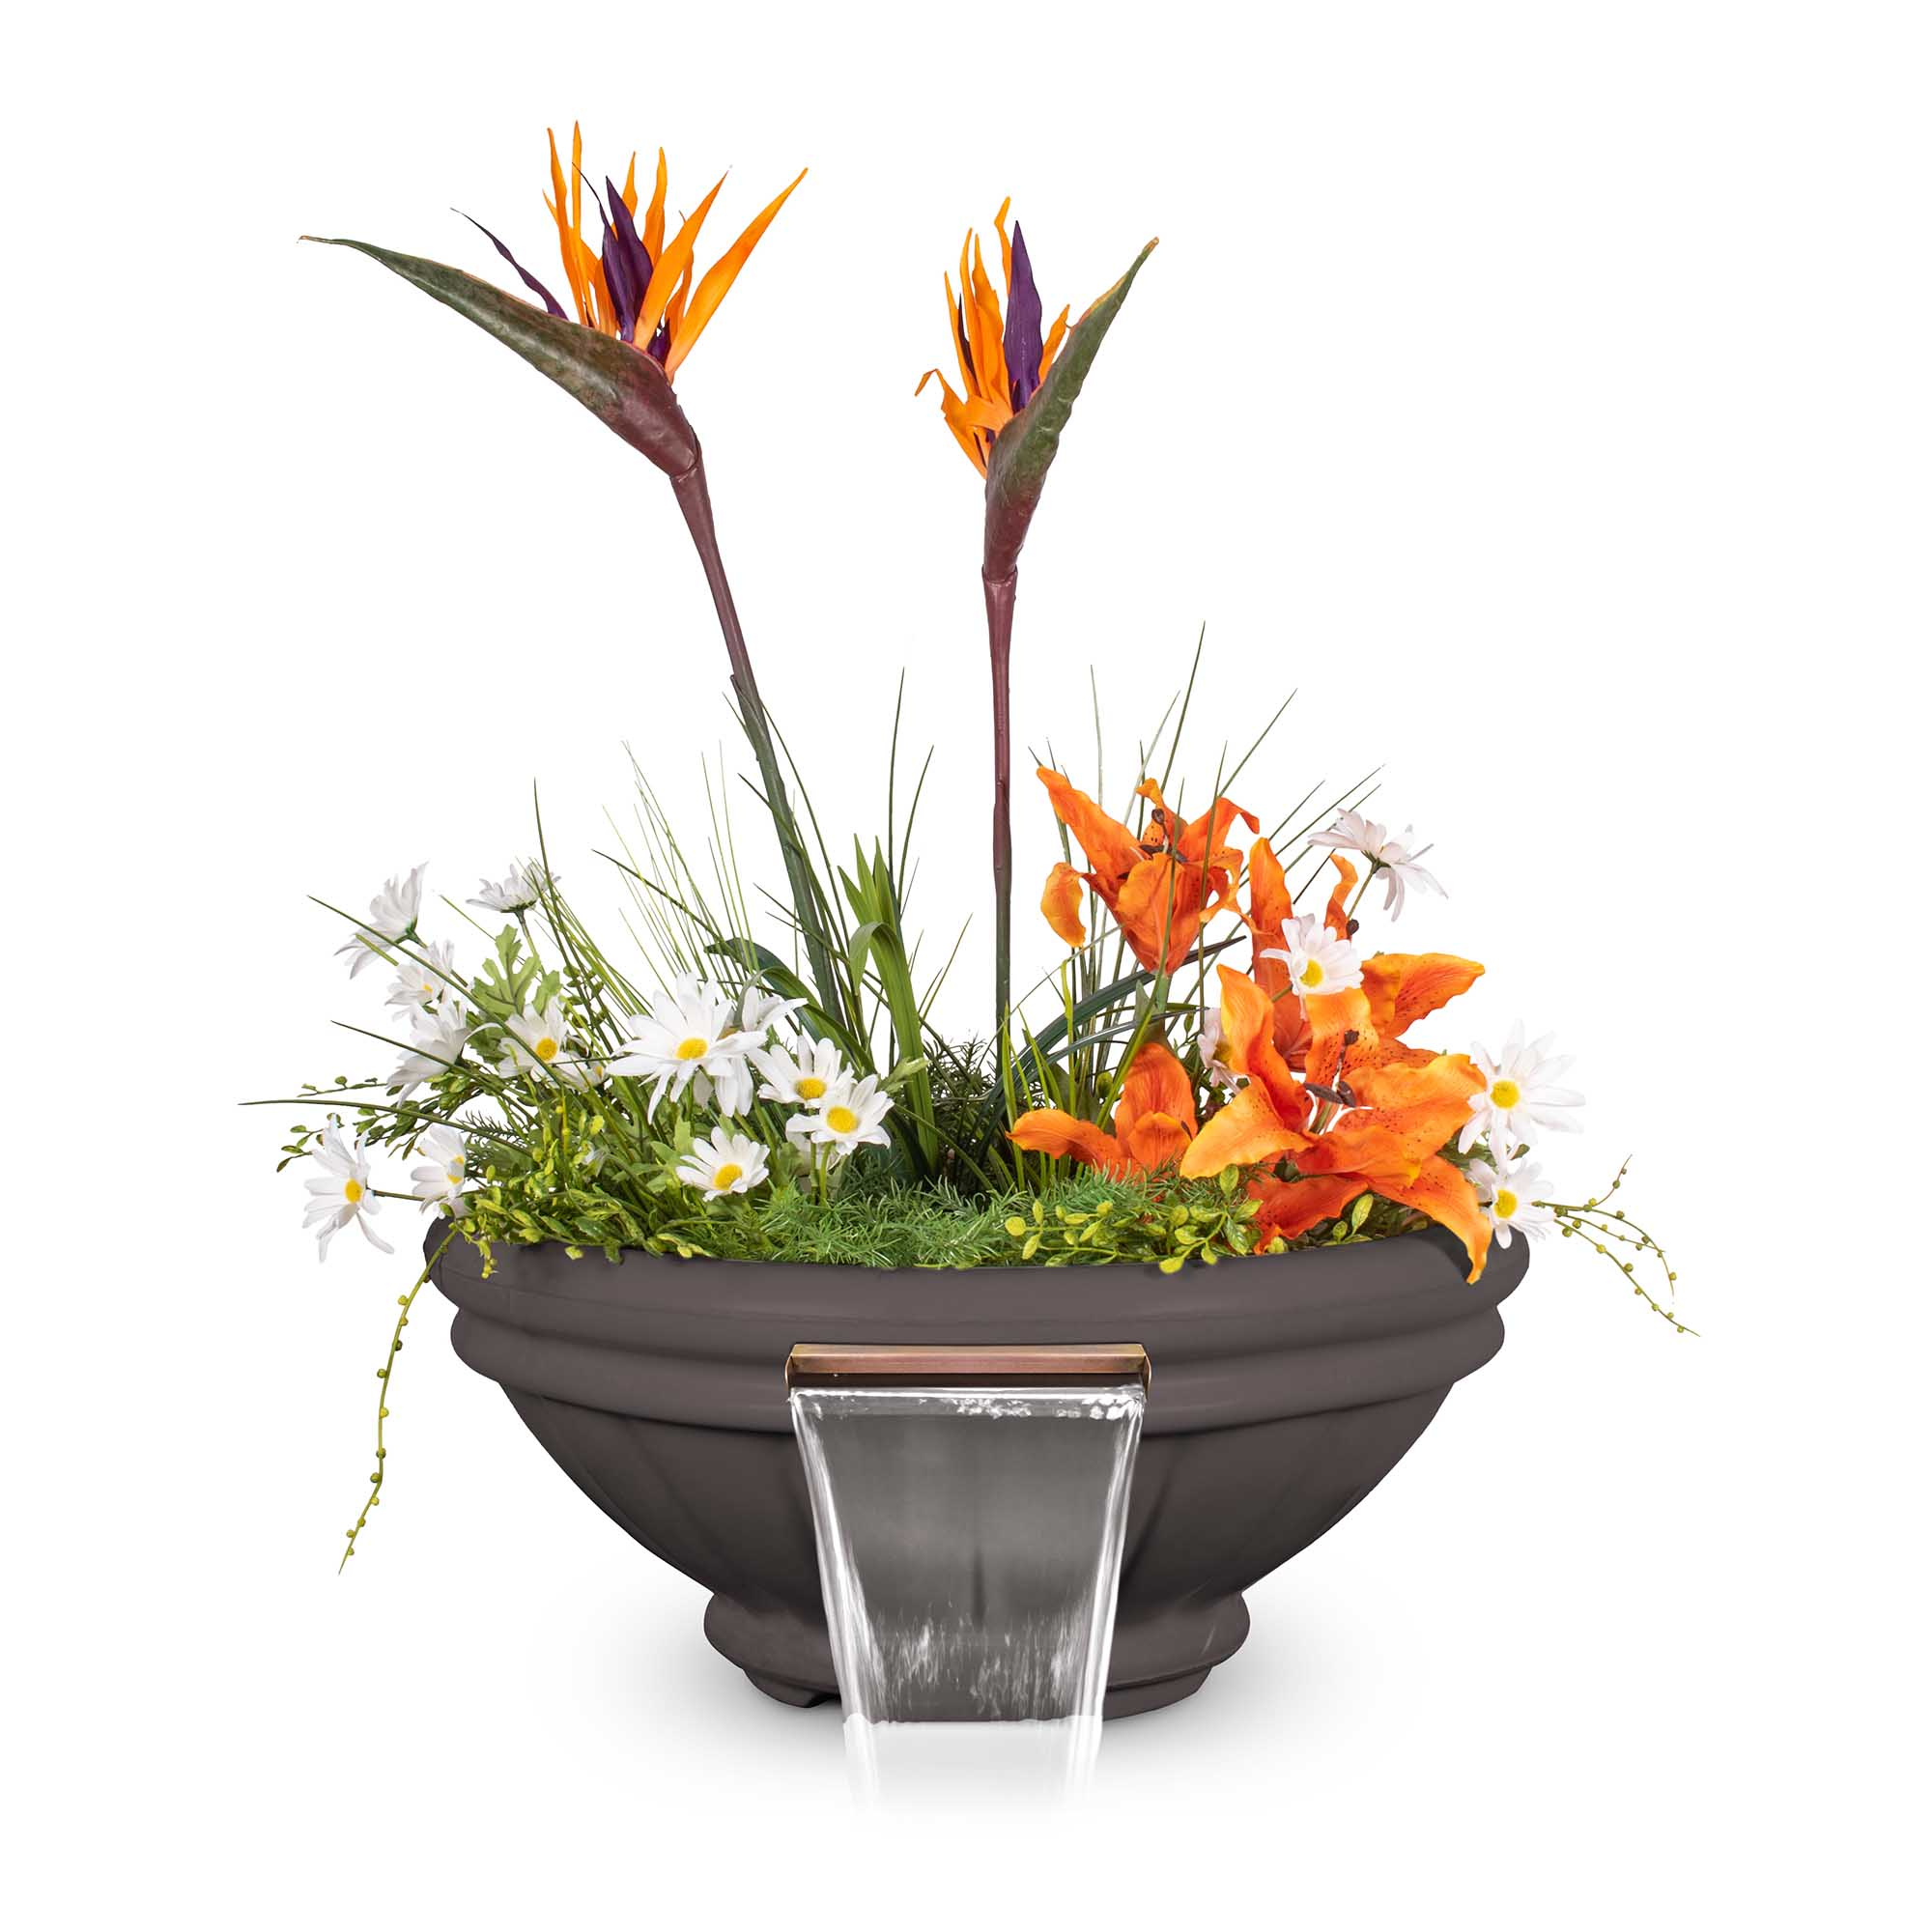 Roma GFRC Planter Water Bowl - Chestnut